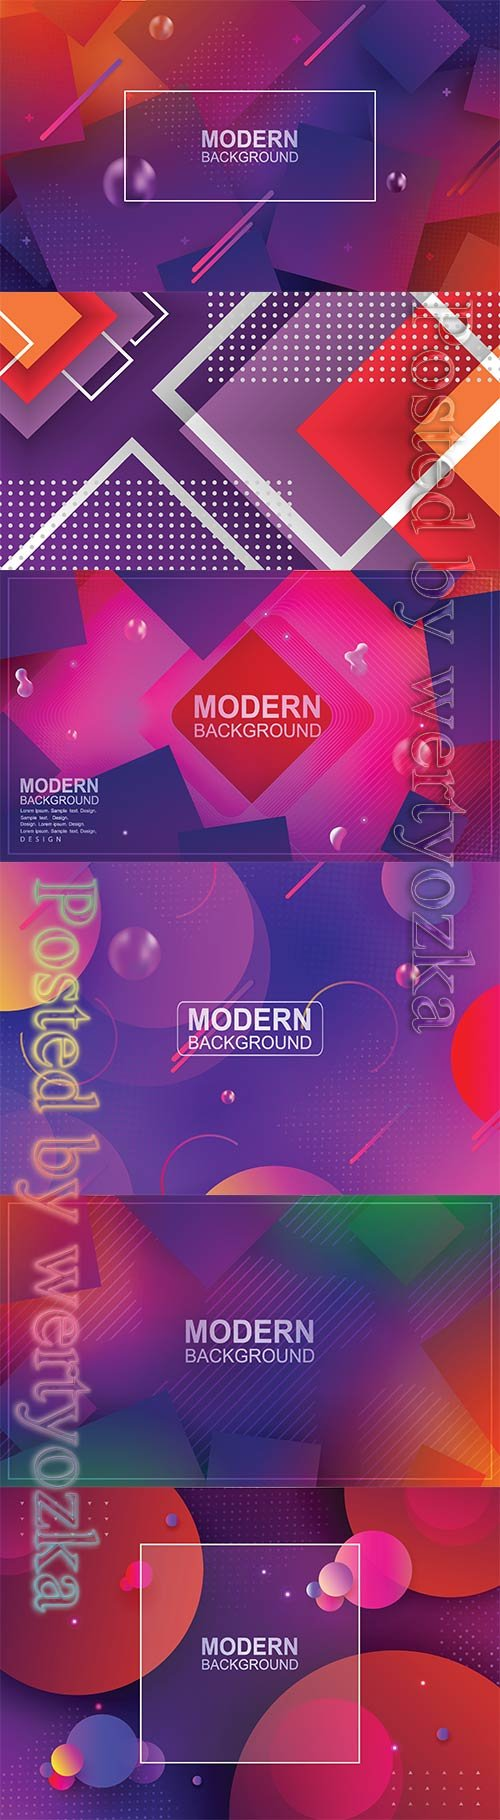 Abstract luxury vector backgrounds with different shapes # 5